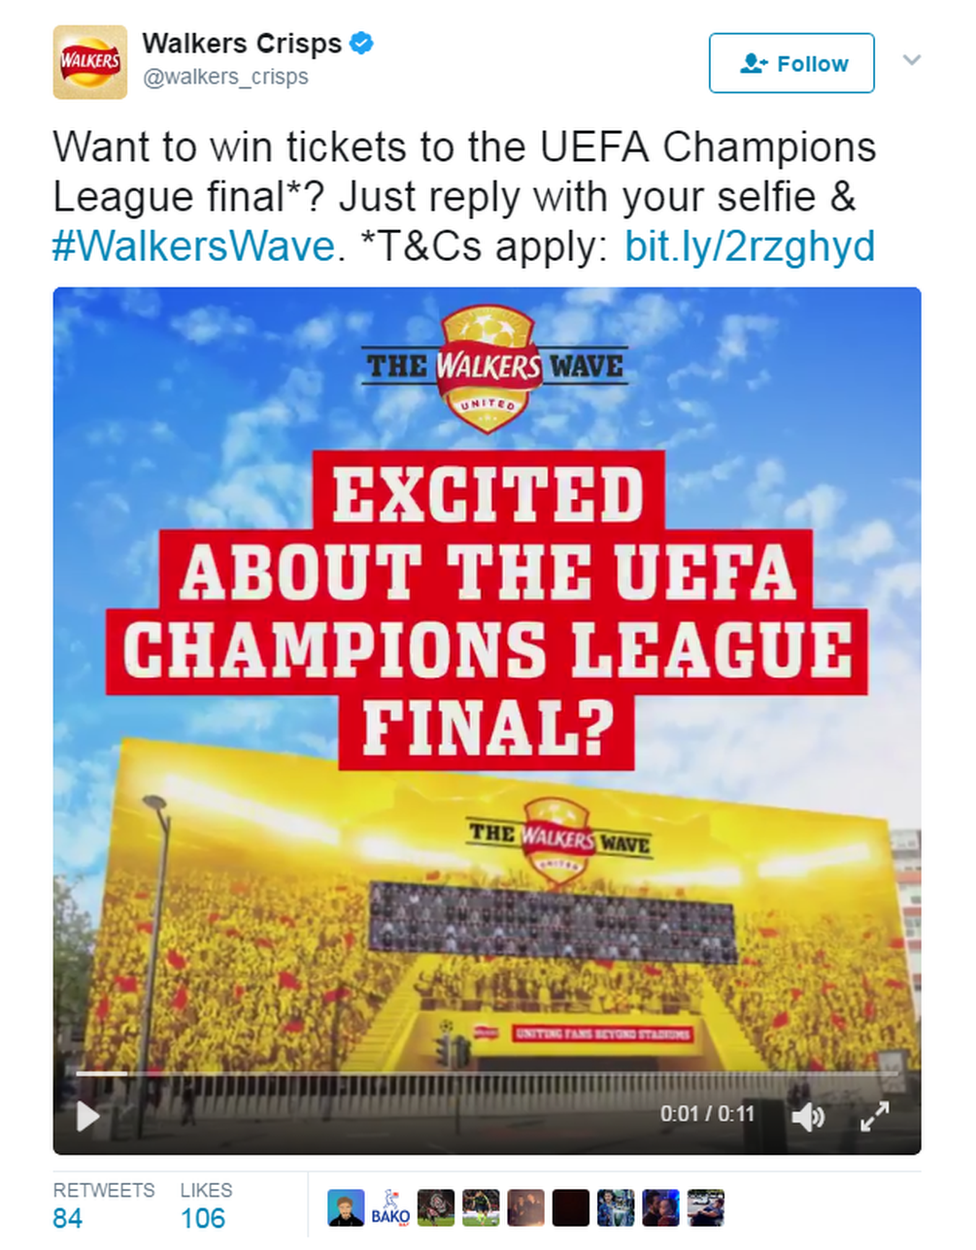 Walkers Crisps' tweet: Excited about the Uefa Champions League Final?